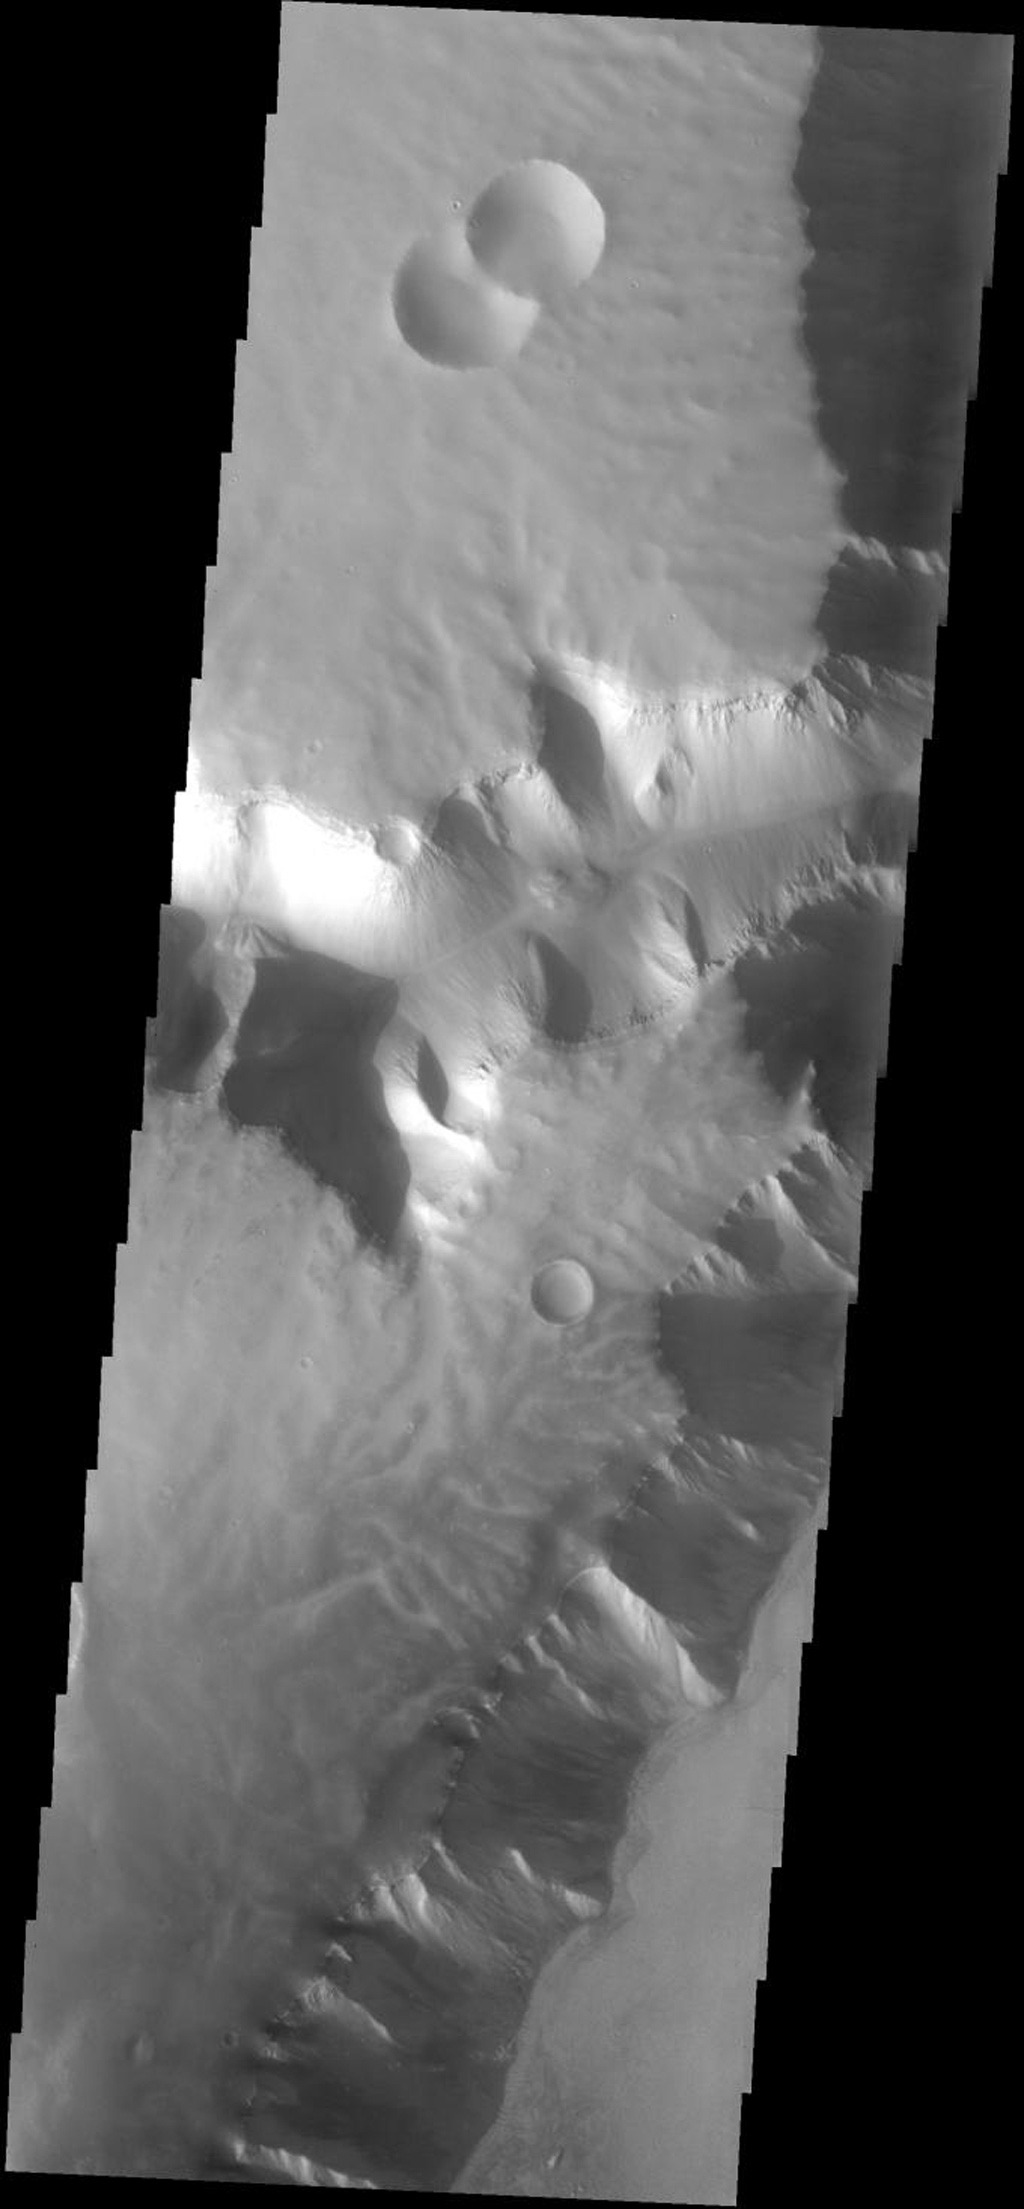 This plateau borders Echus Chasma on Mars. The surface of the plateau has been dissected by shallow channels of unknown origin. This image is from NASA's 2001 Mars Odyssey spacecraft.